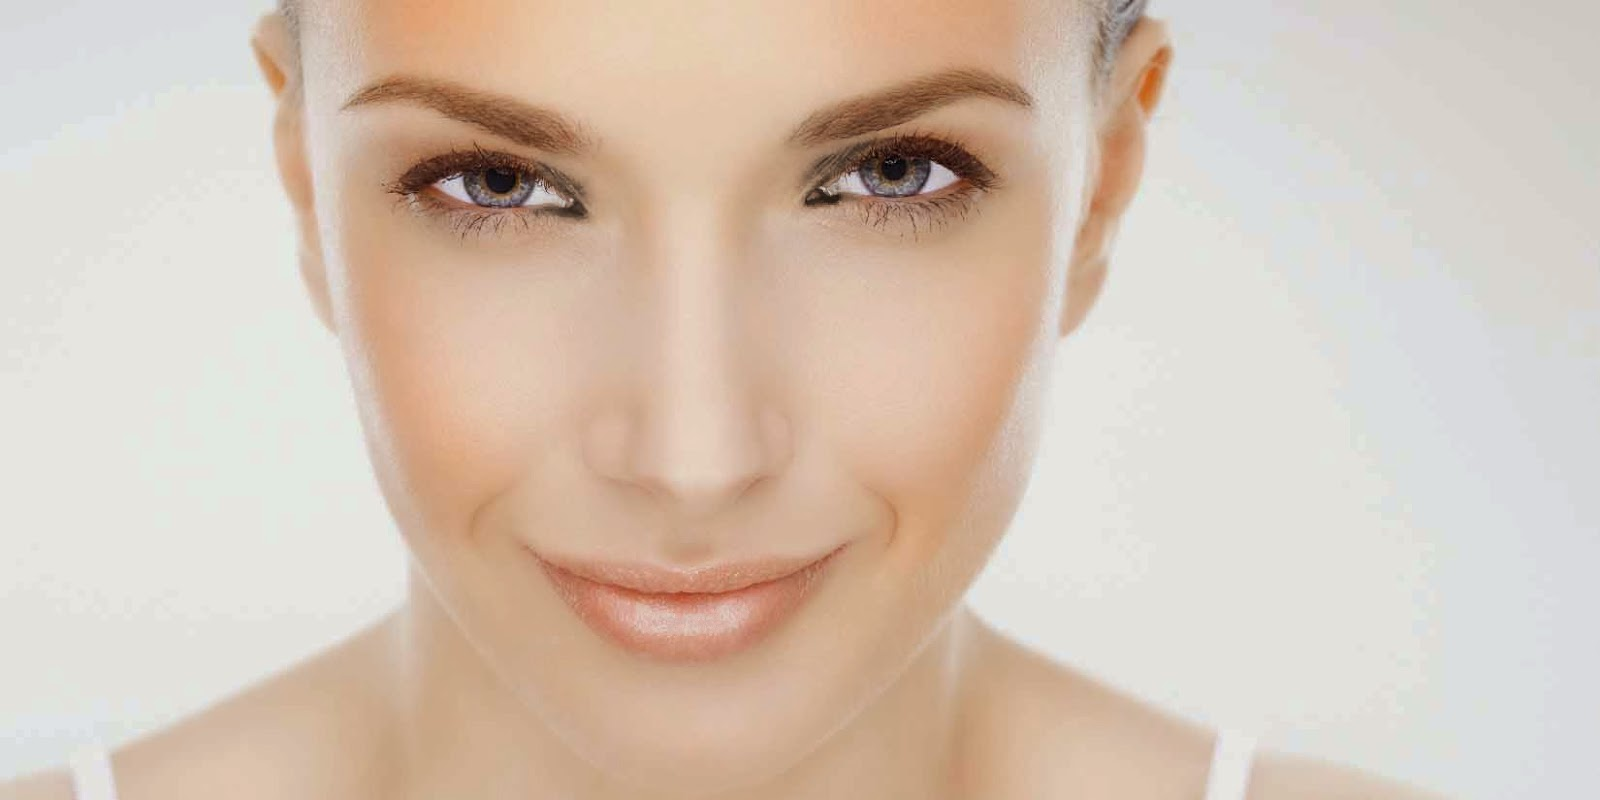 5 Facts About Anti-Aging Cream That You Should Know